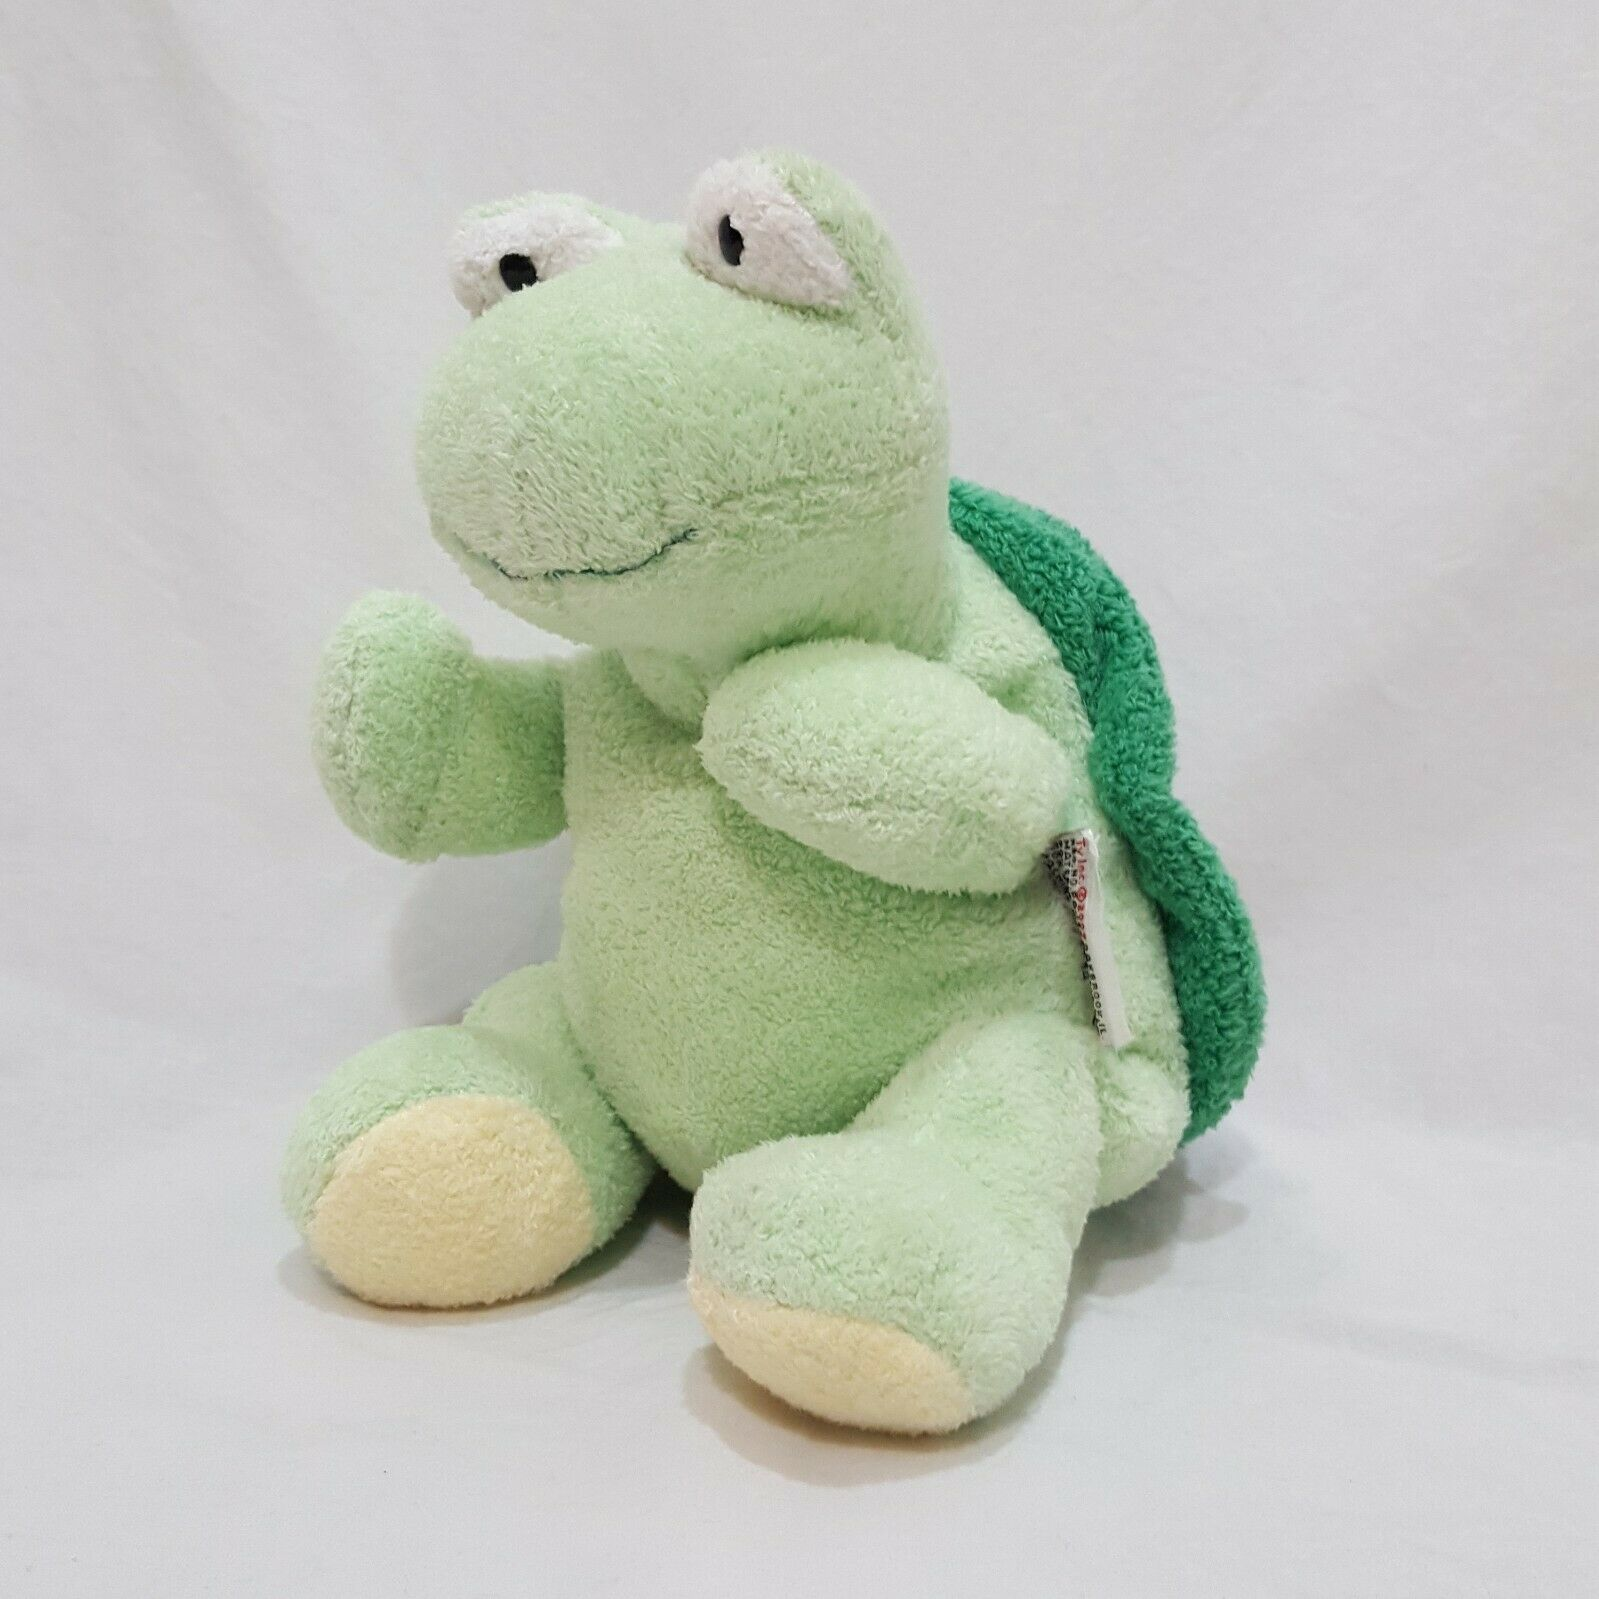 "Ty Pluffies Zips Green Shell Turtle Baby Lovey Plush Stuffed Animal 9"" 2007"